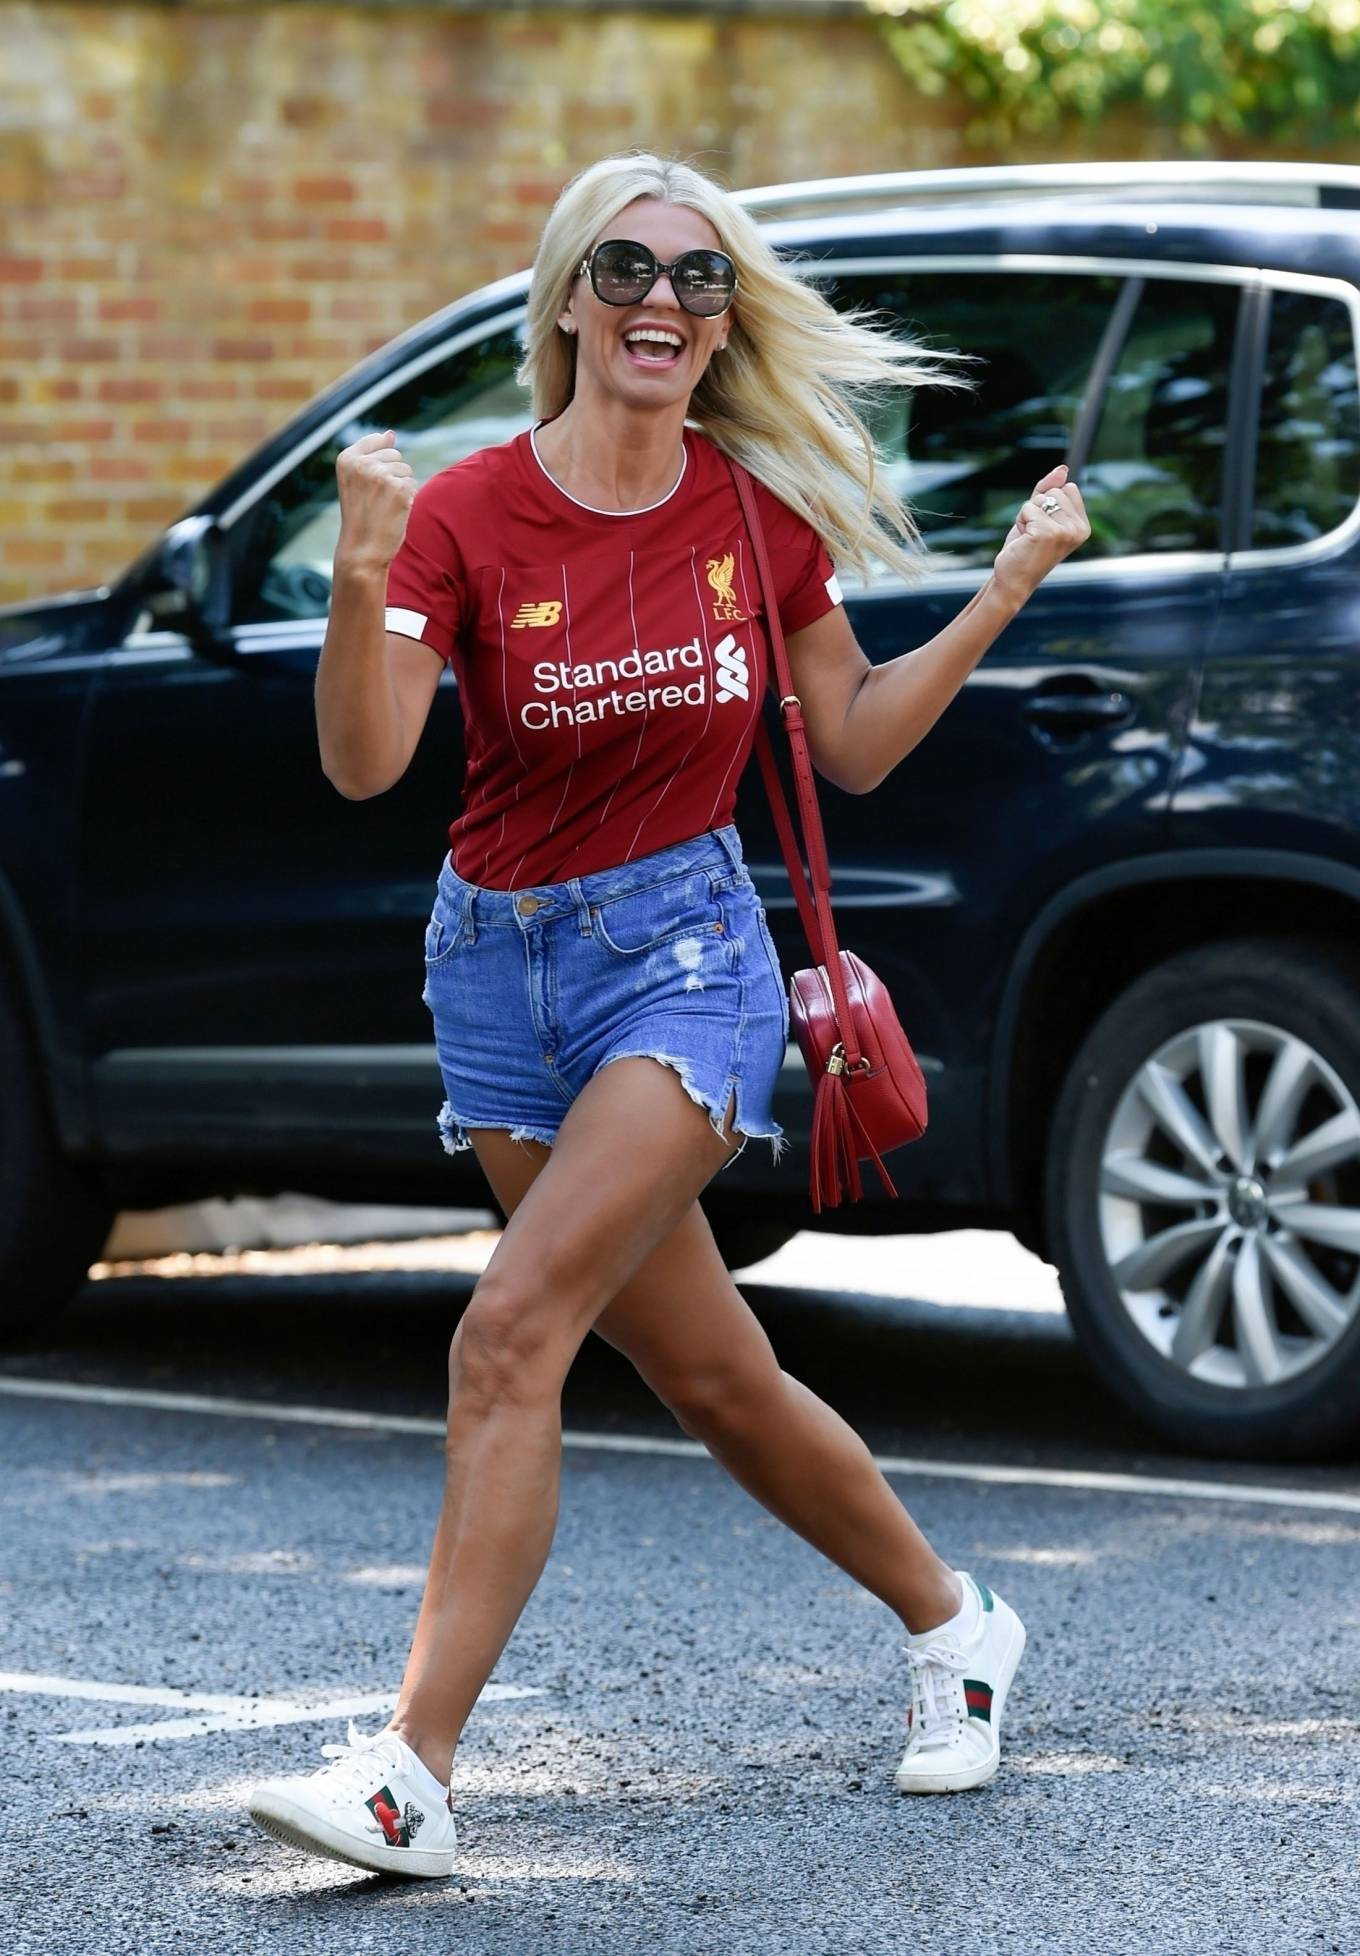 Christine McGuinness 2020 : Christine McGuinness in Jeans Shorts – Out and about in Cheshire-19